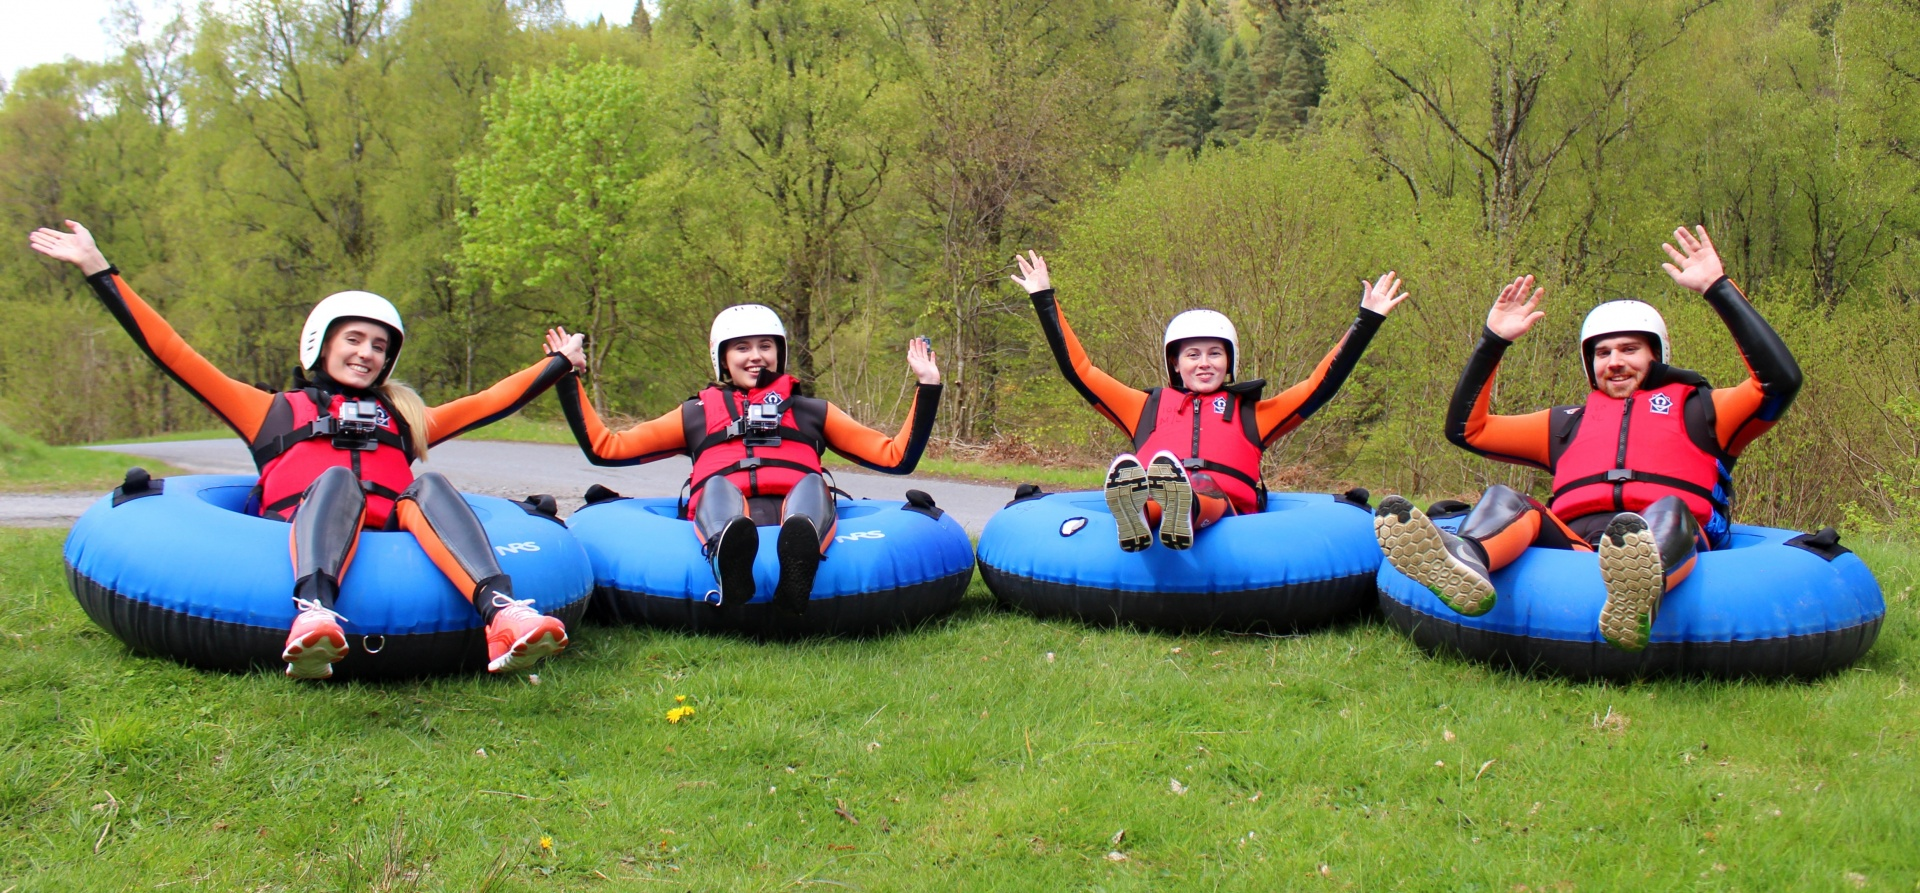 Adventure Tubing Experience for Two - Perthshire-3